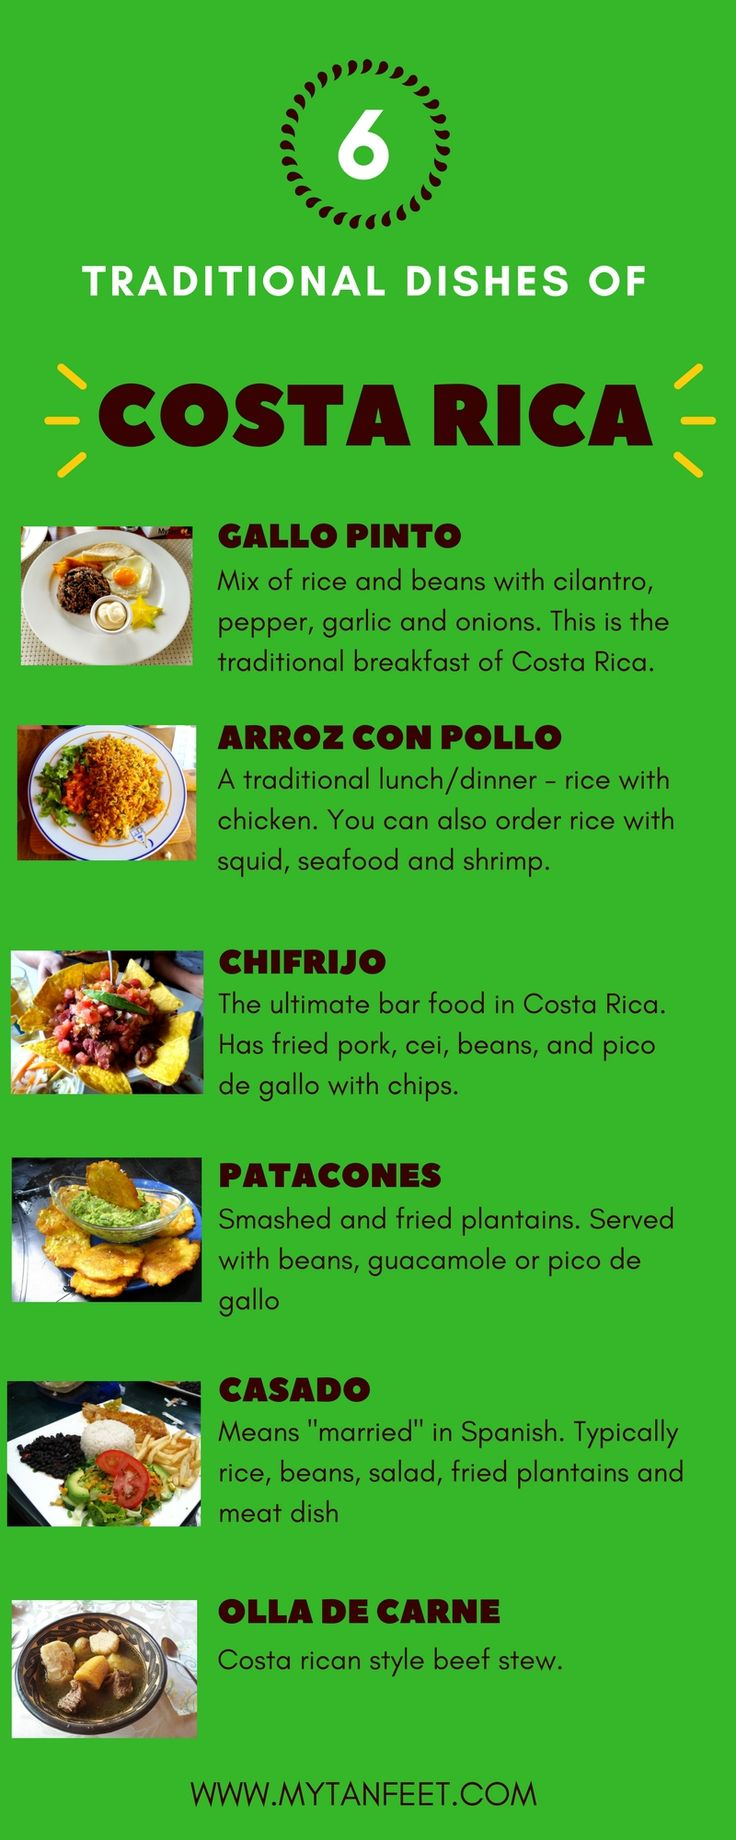 6 traditional dishes of Costa Rica: what to eat in Costa Rica. Click through to read more: http://mytanfeet.com/costa-rican-food/what-to-eat-in-costa-rica/    Costa Rica | Costa Rican food | Costa Rica travel tips | Costa Rica travel blog